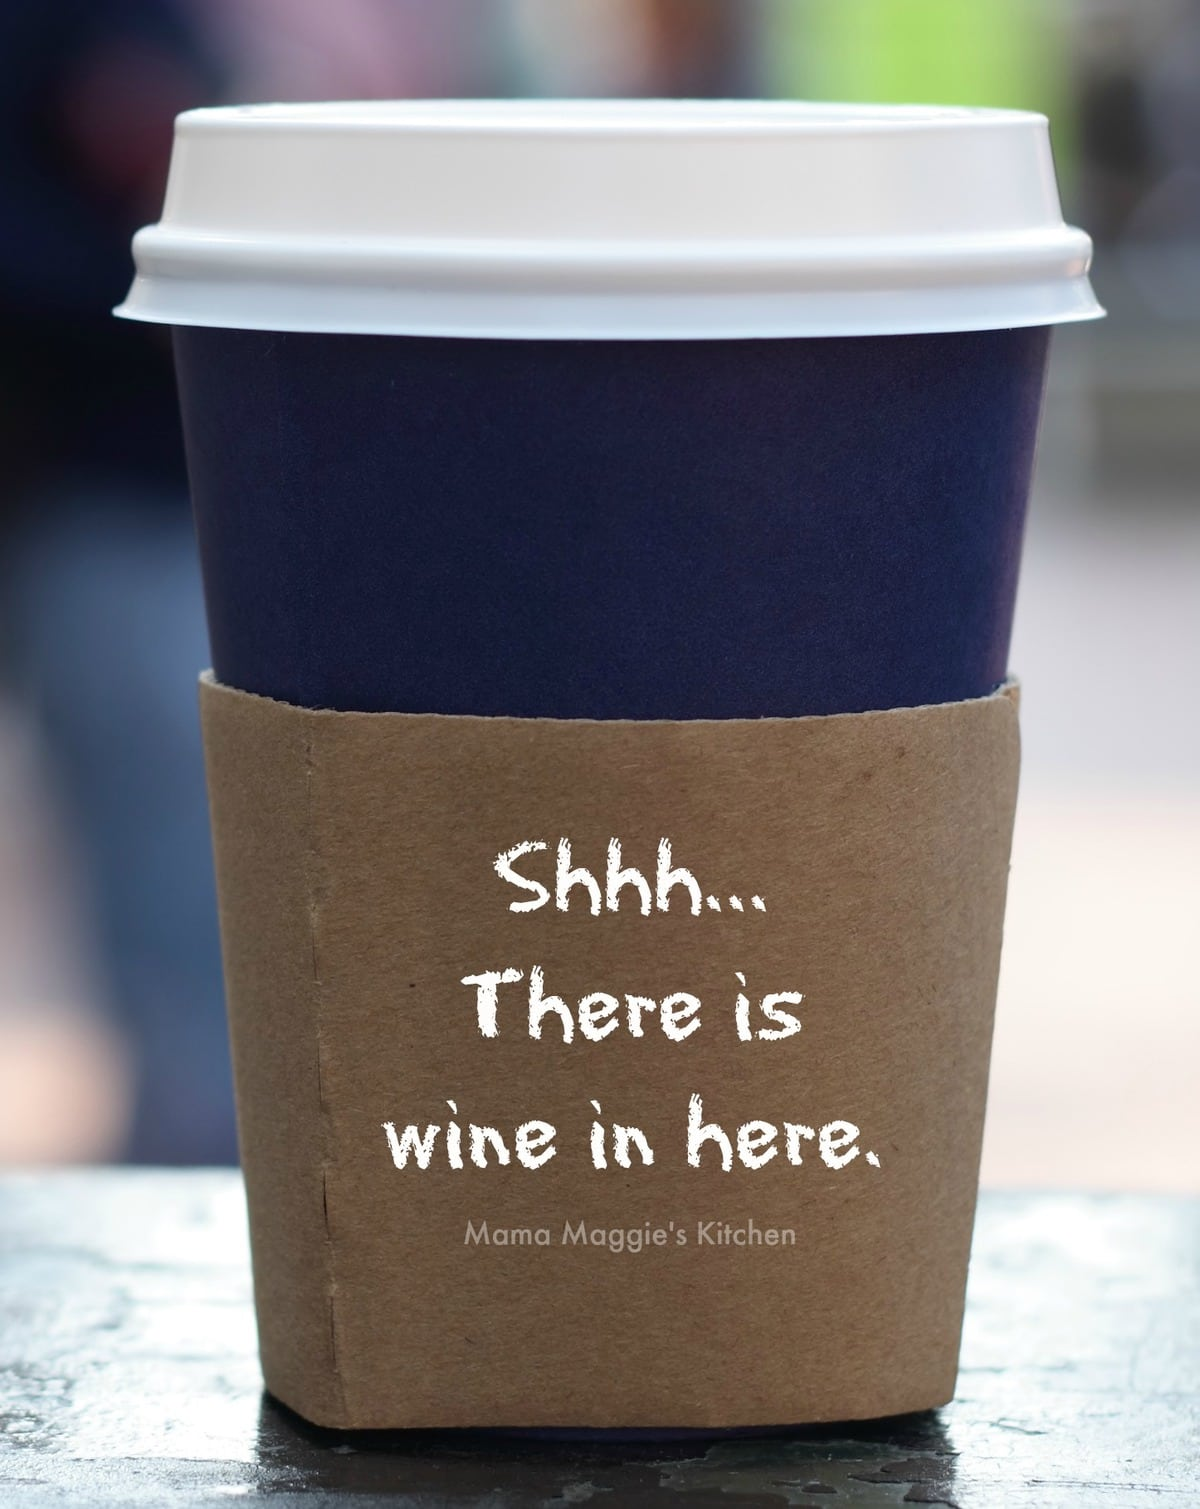 Shhh.. there's wine in here (coffee cup). quote